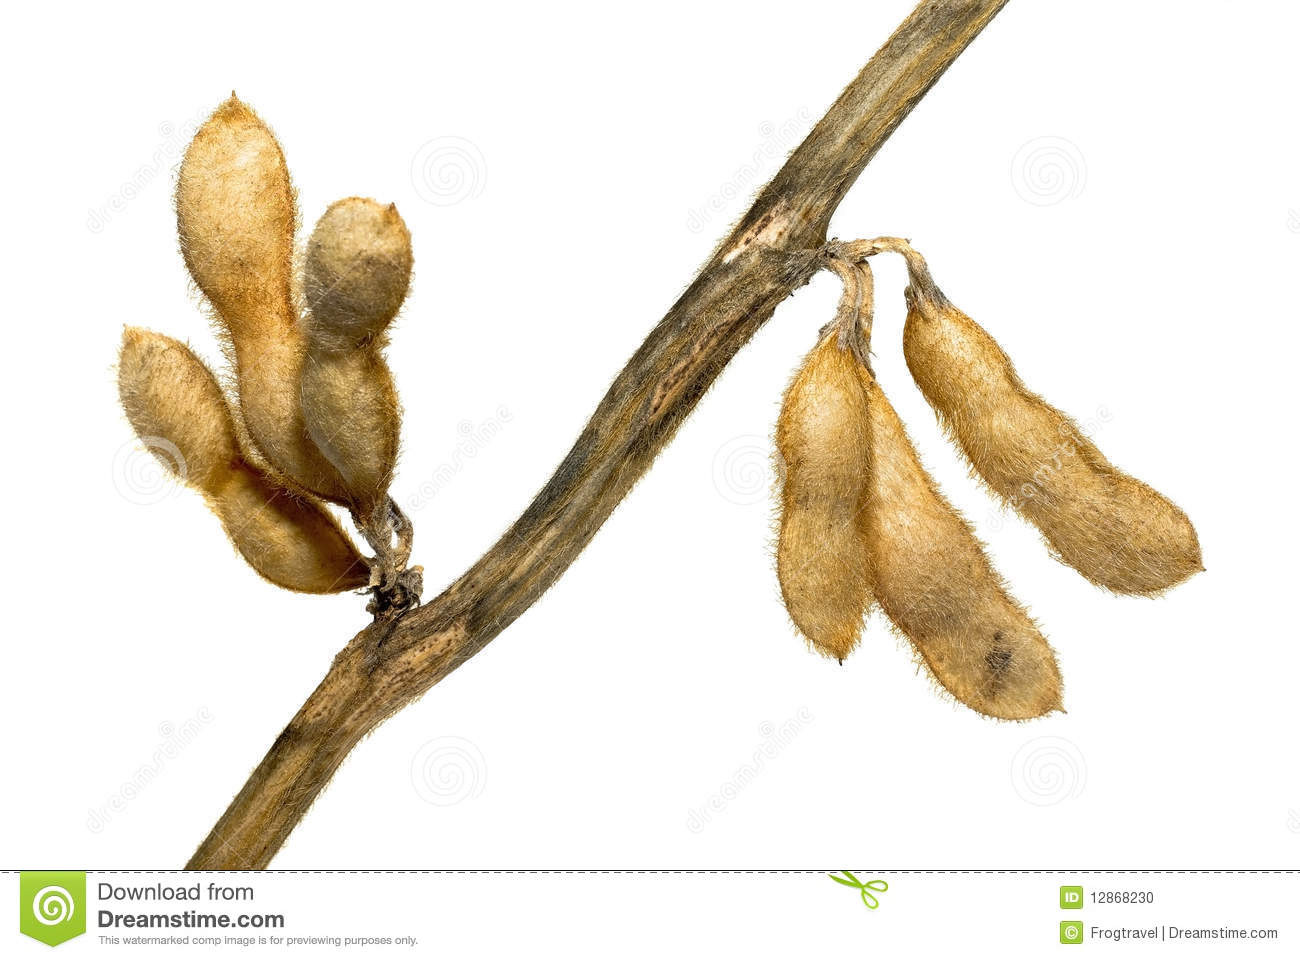 Soybean Pods Stock Photo - Image: 12868230